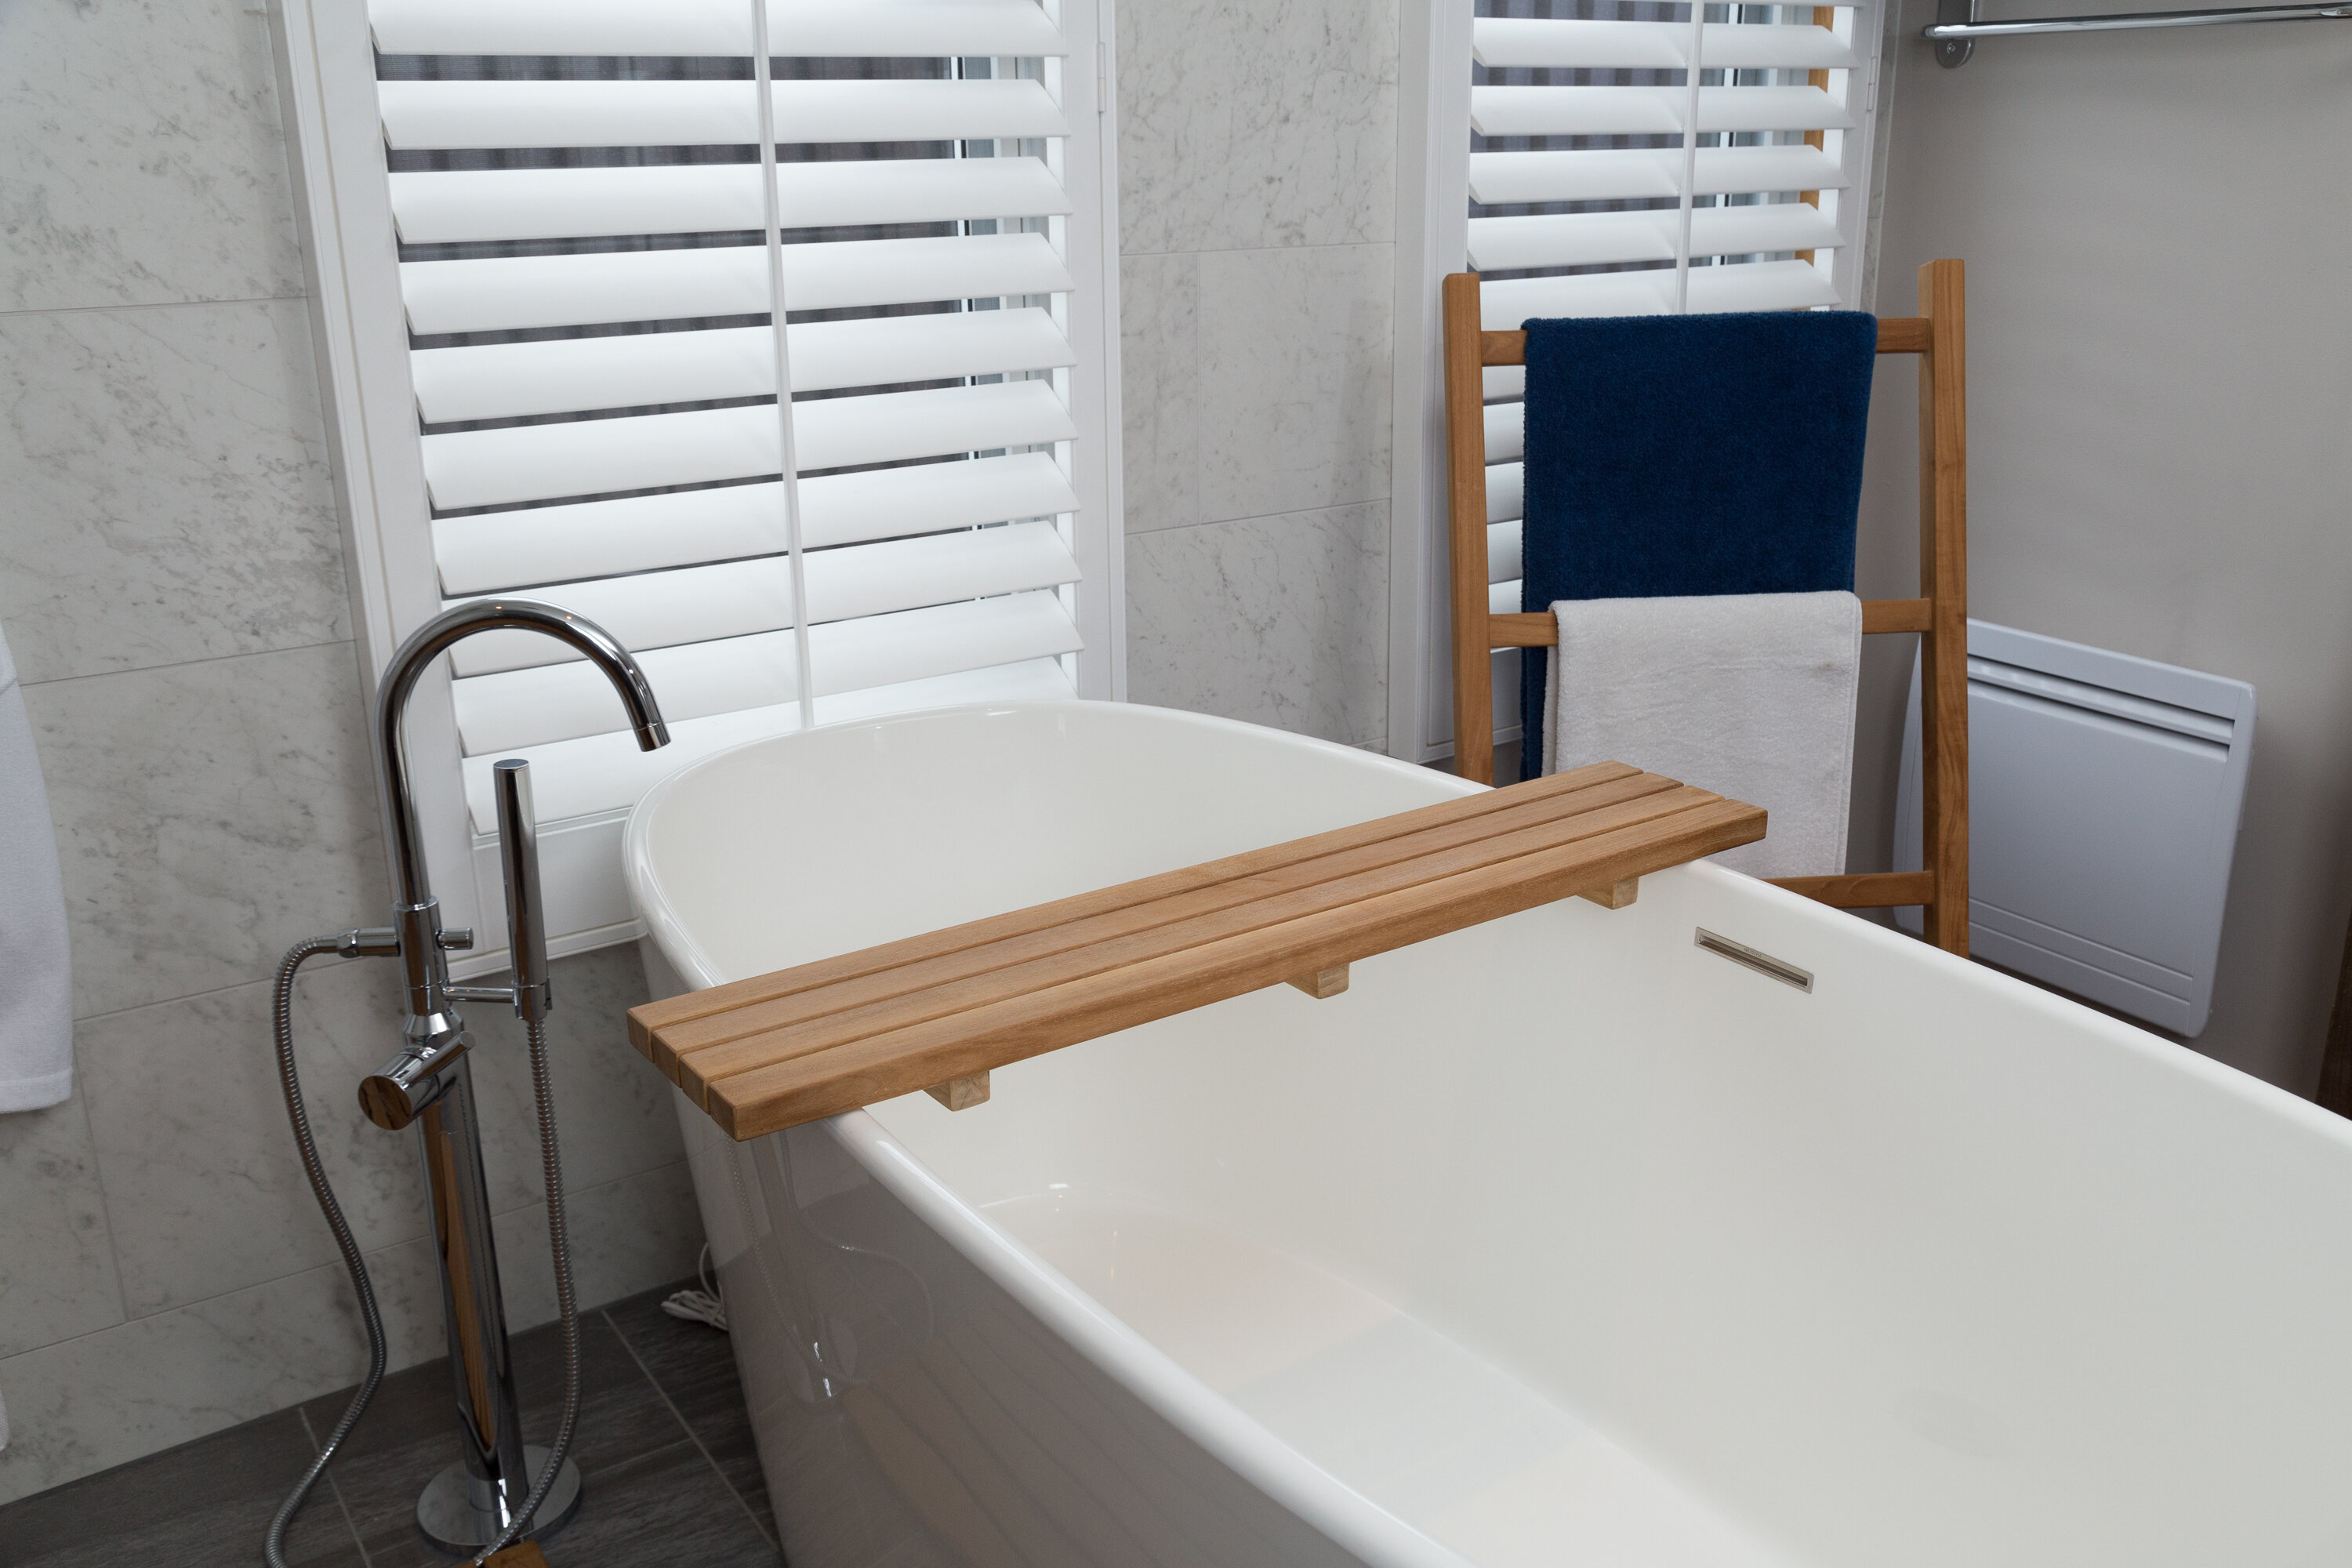 up line tray adorn tub expands bath com alibaba on caddy bathtub to guides find shopping bamboo get cheap at deals quotations